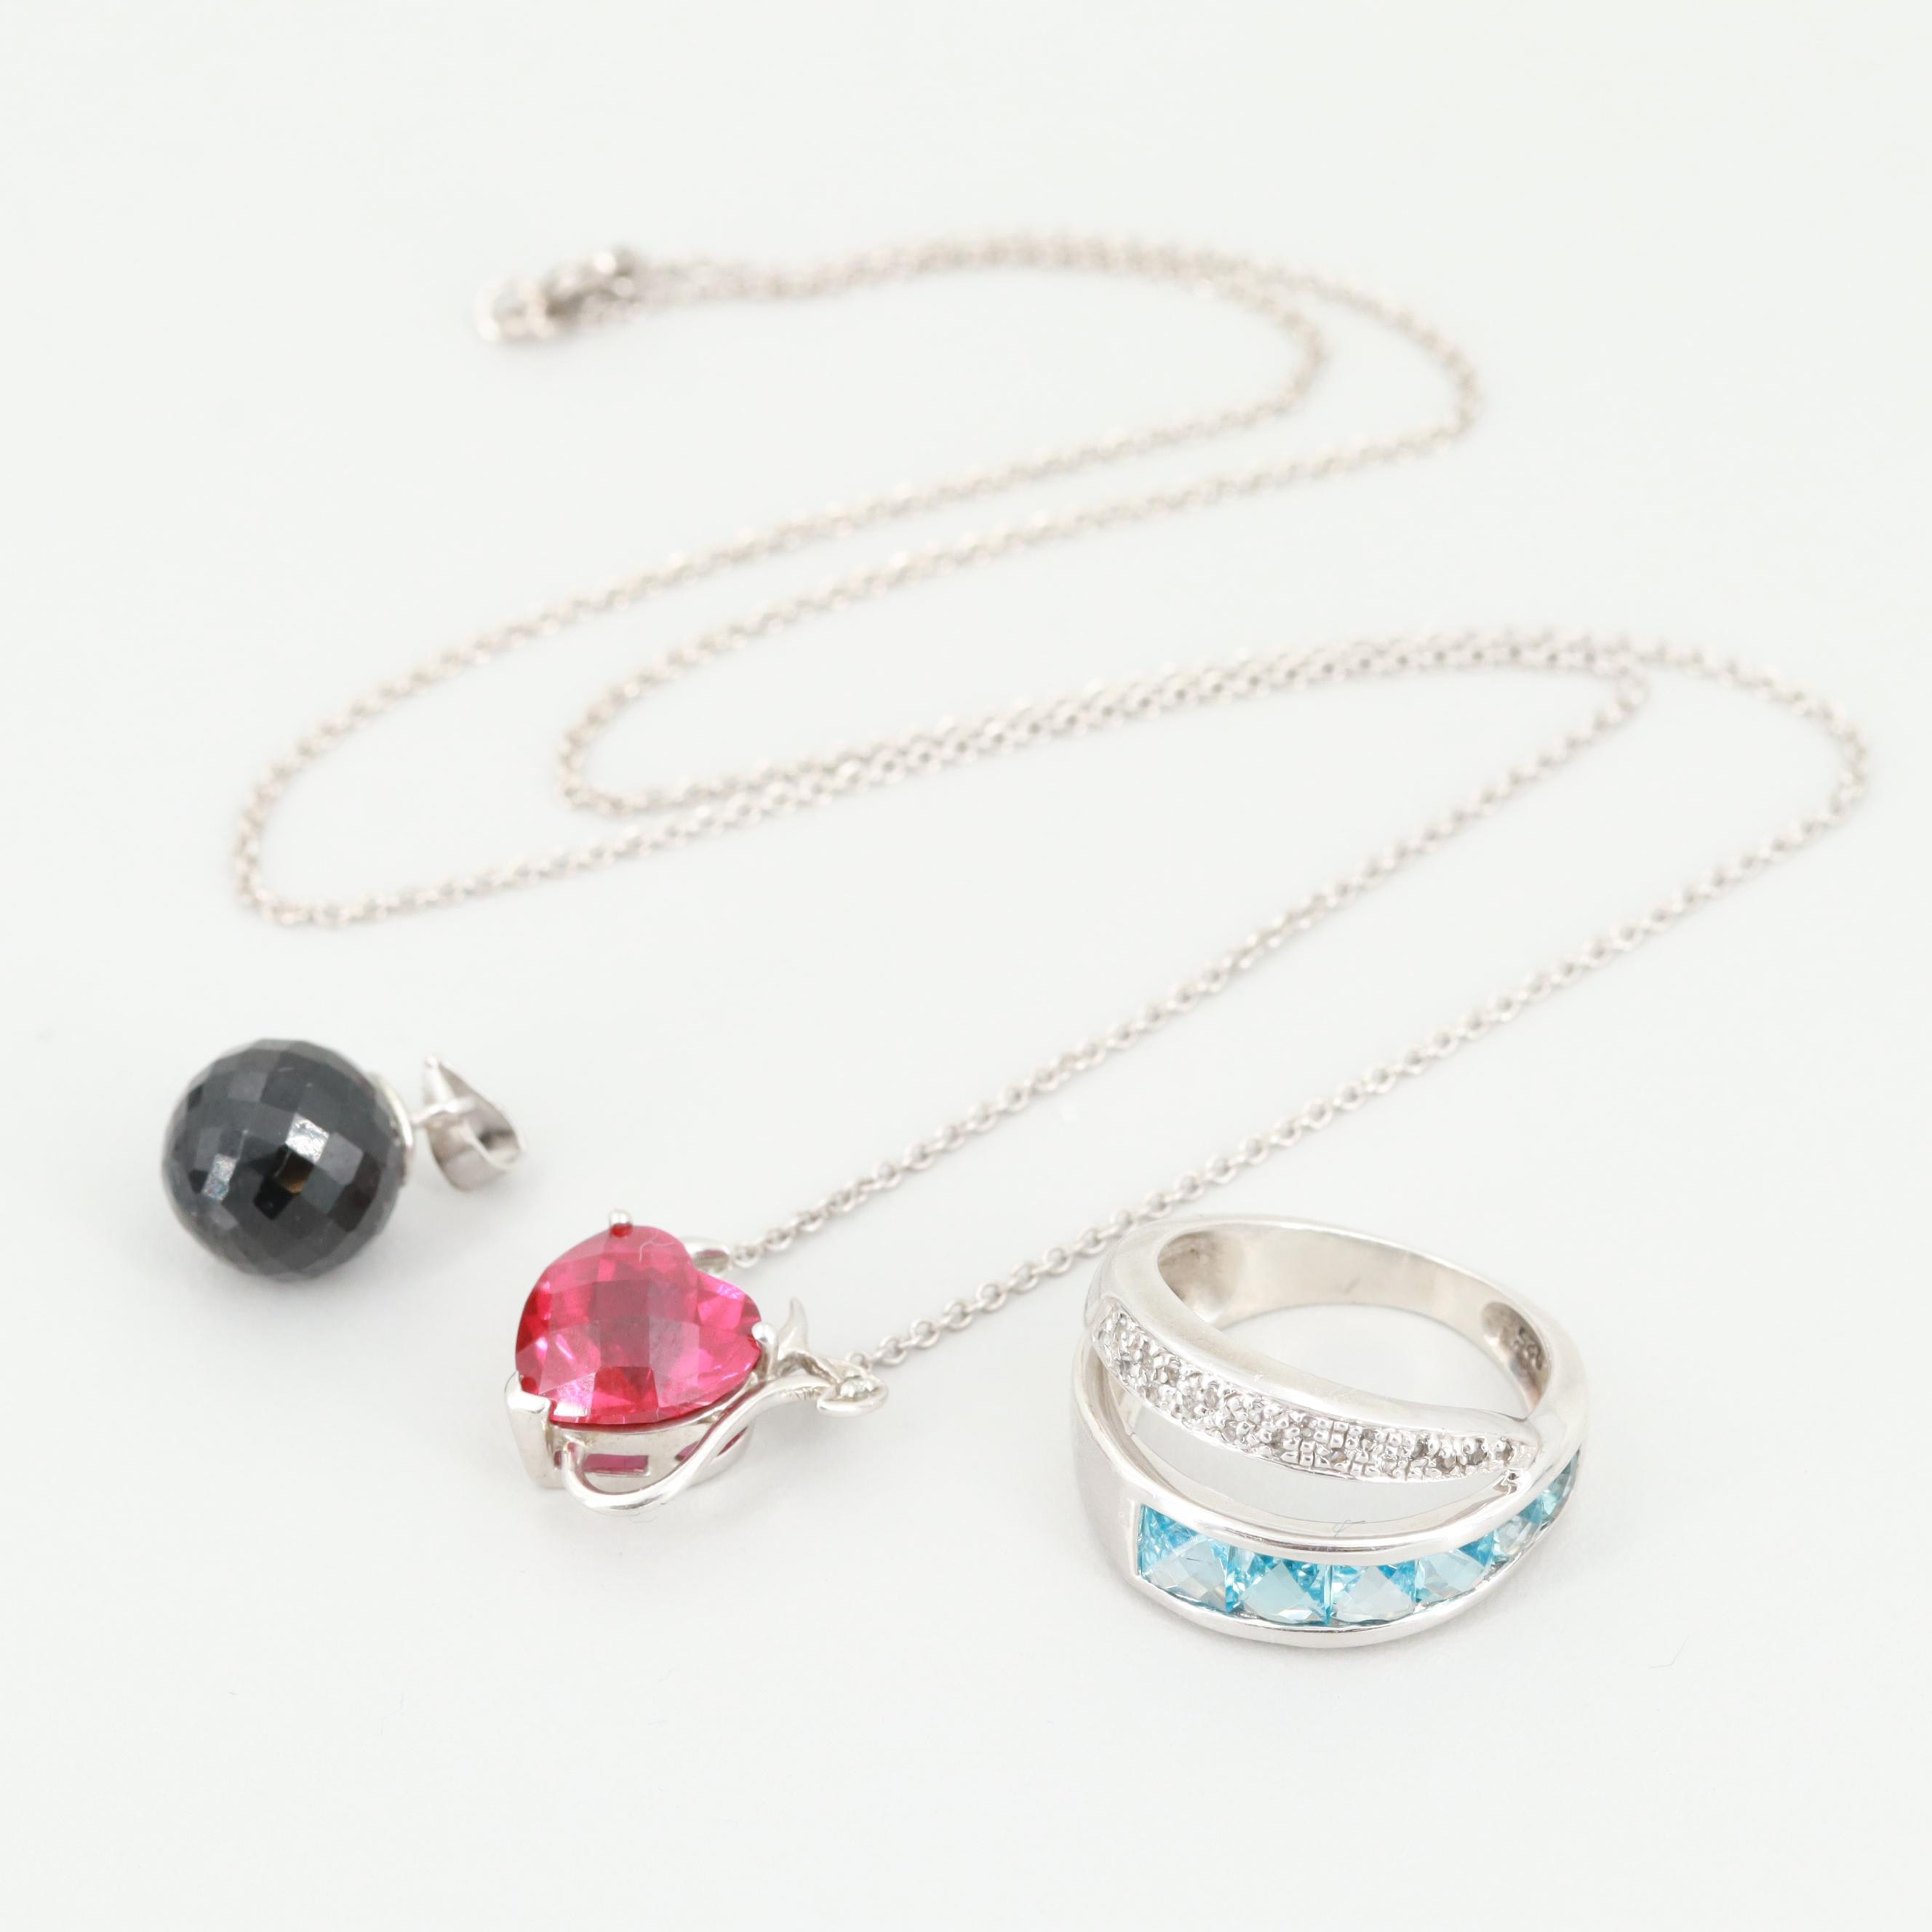 Sterling Silver Heart Necklace, Ring and Pendant with Onyx, Ruby and Topaz